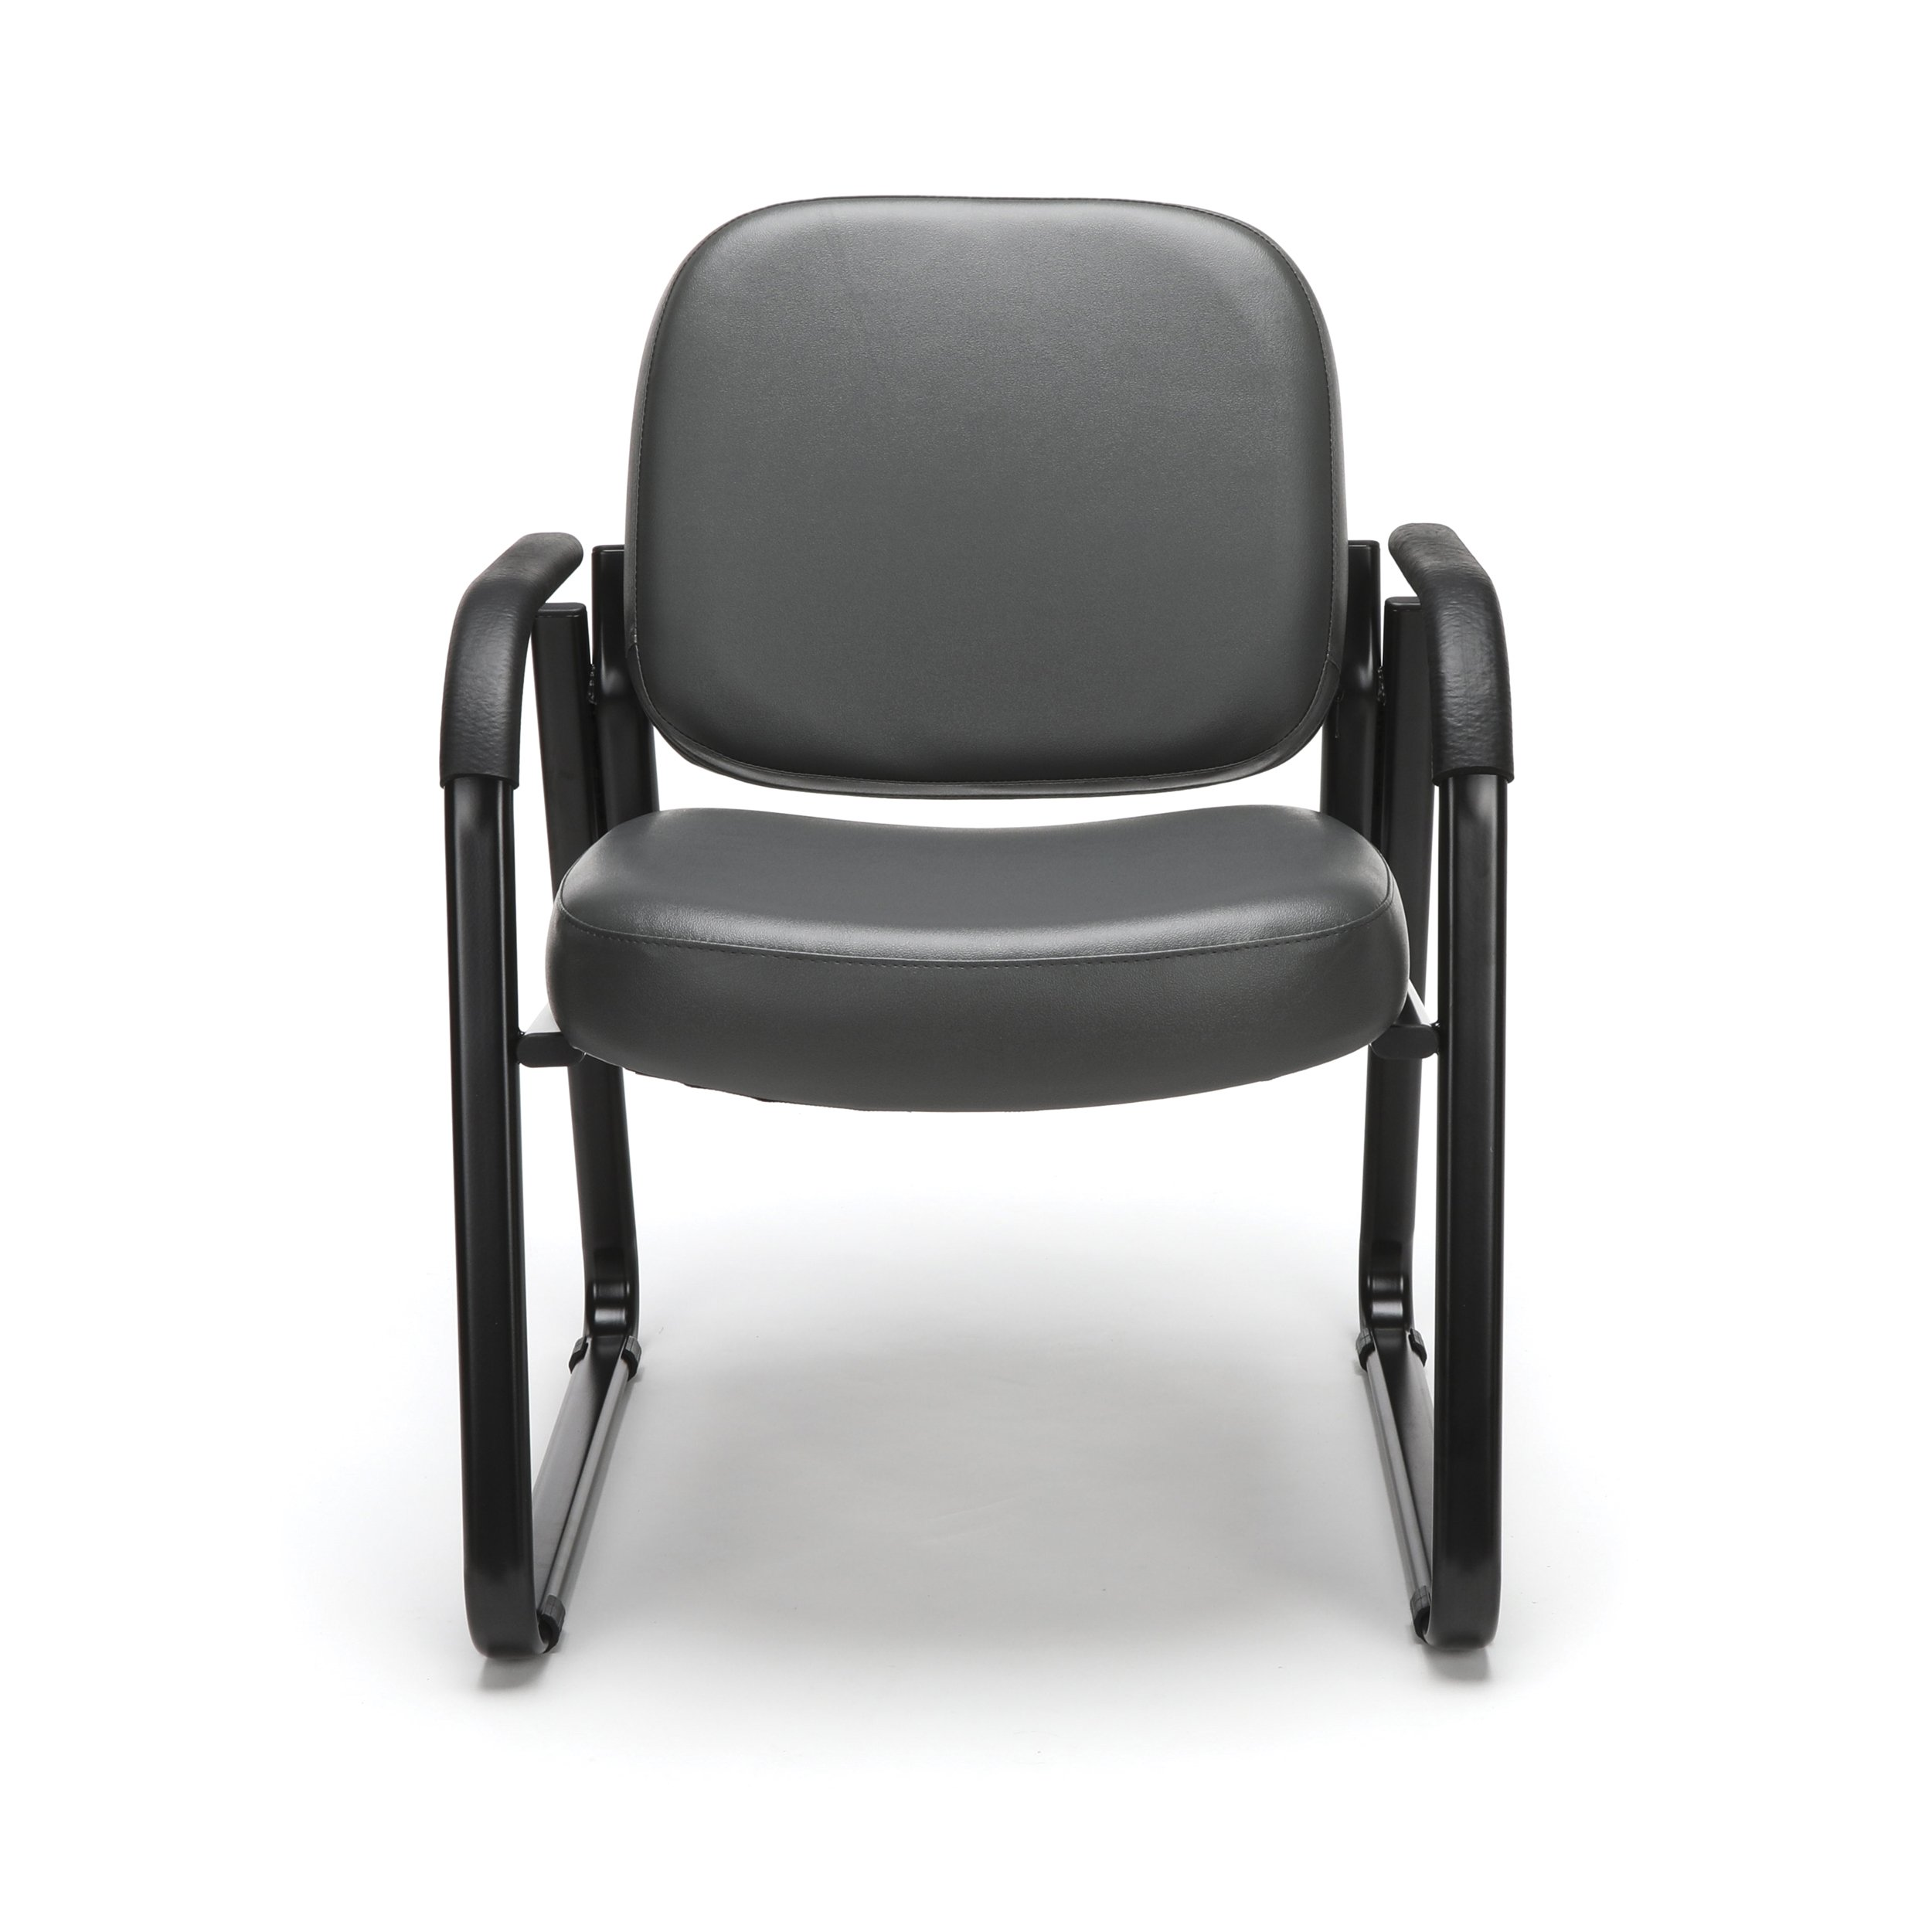 OFM Reception Chair with Arms - Anti-Microbial/Anti-Bacterial Vinyl Guest Chair, Charcoal (403-VAM) by OFM (Image #3)